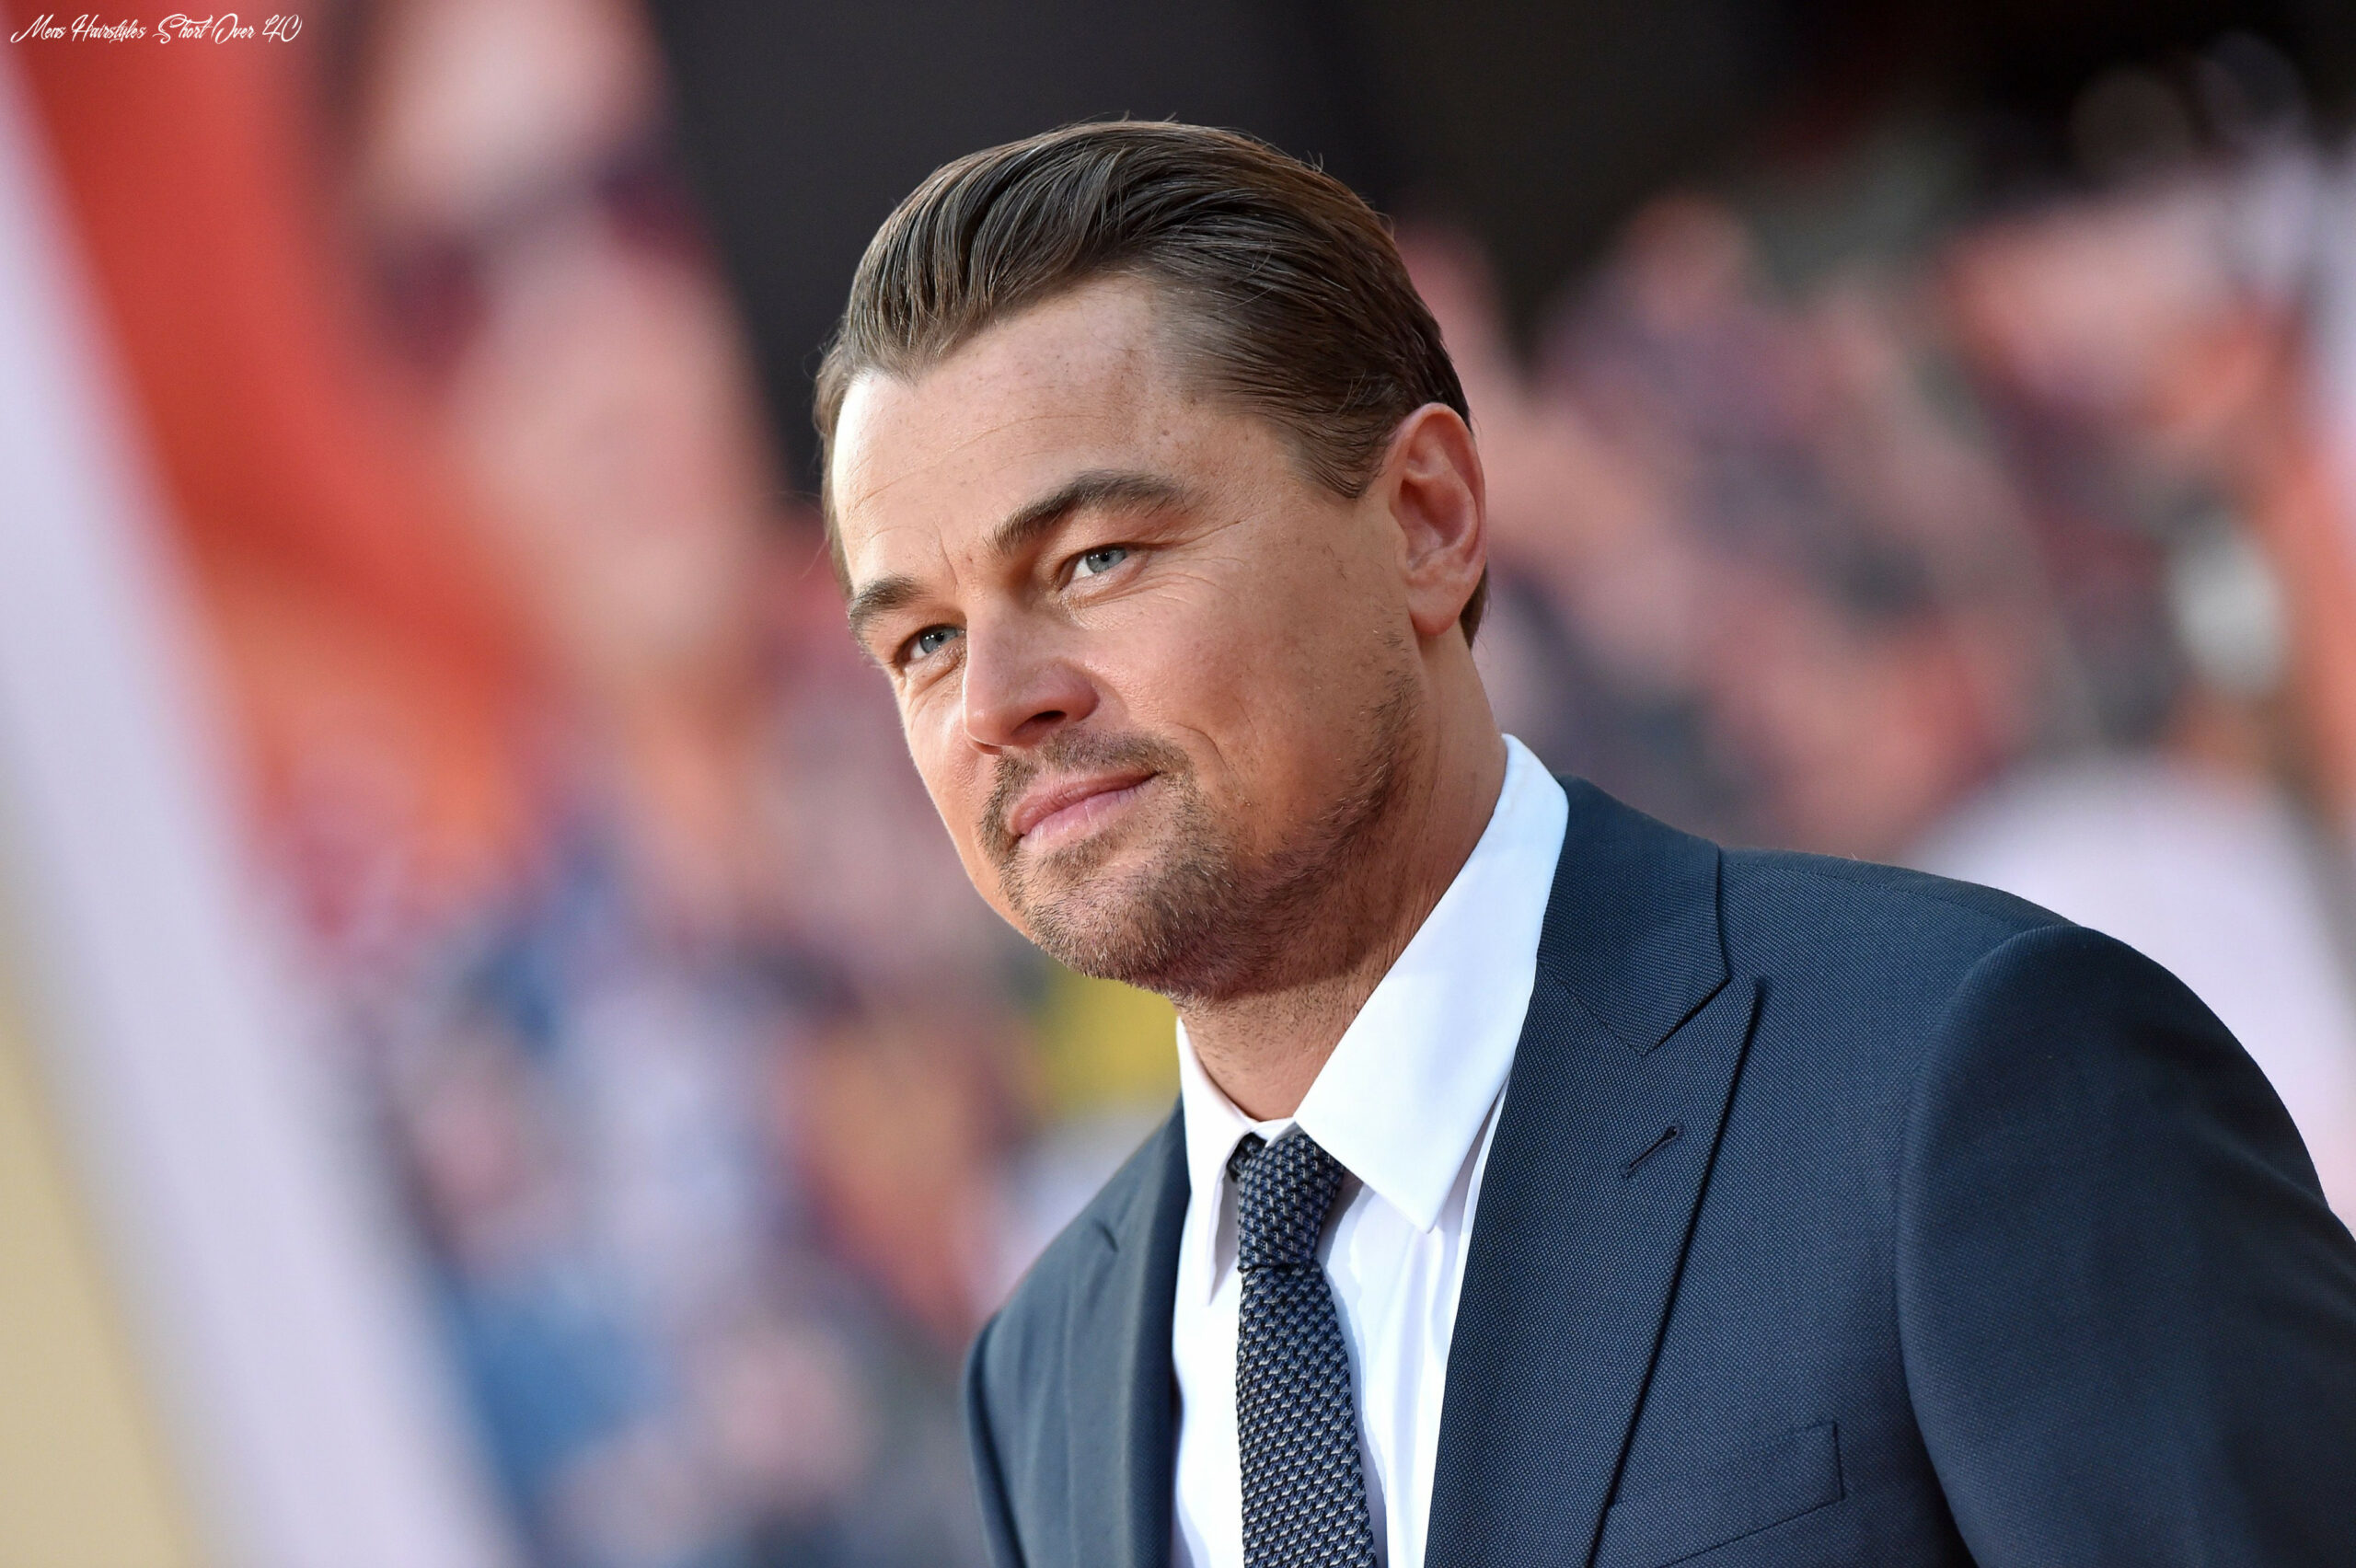 The 12 Best Haircuts for Men Over 12